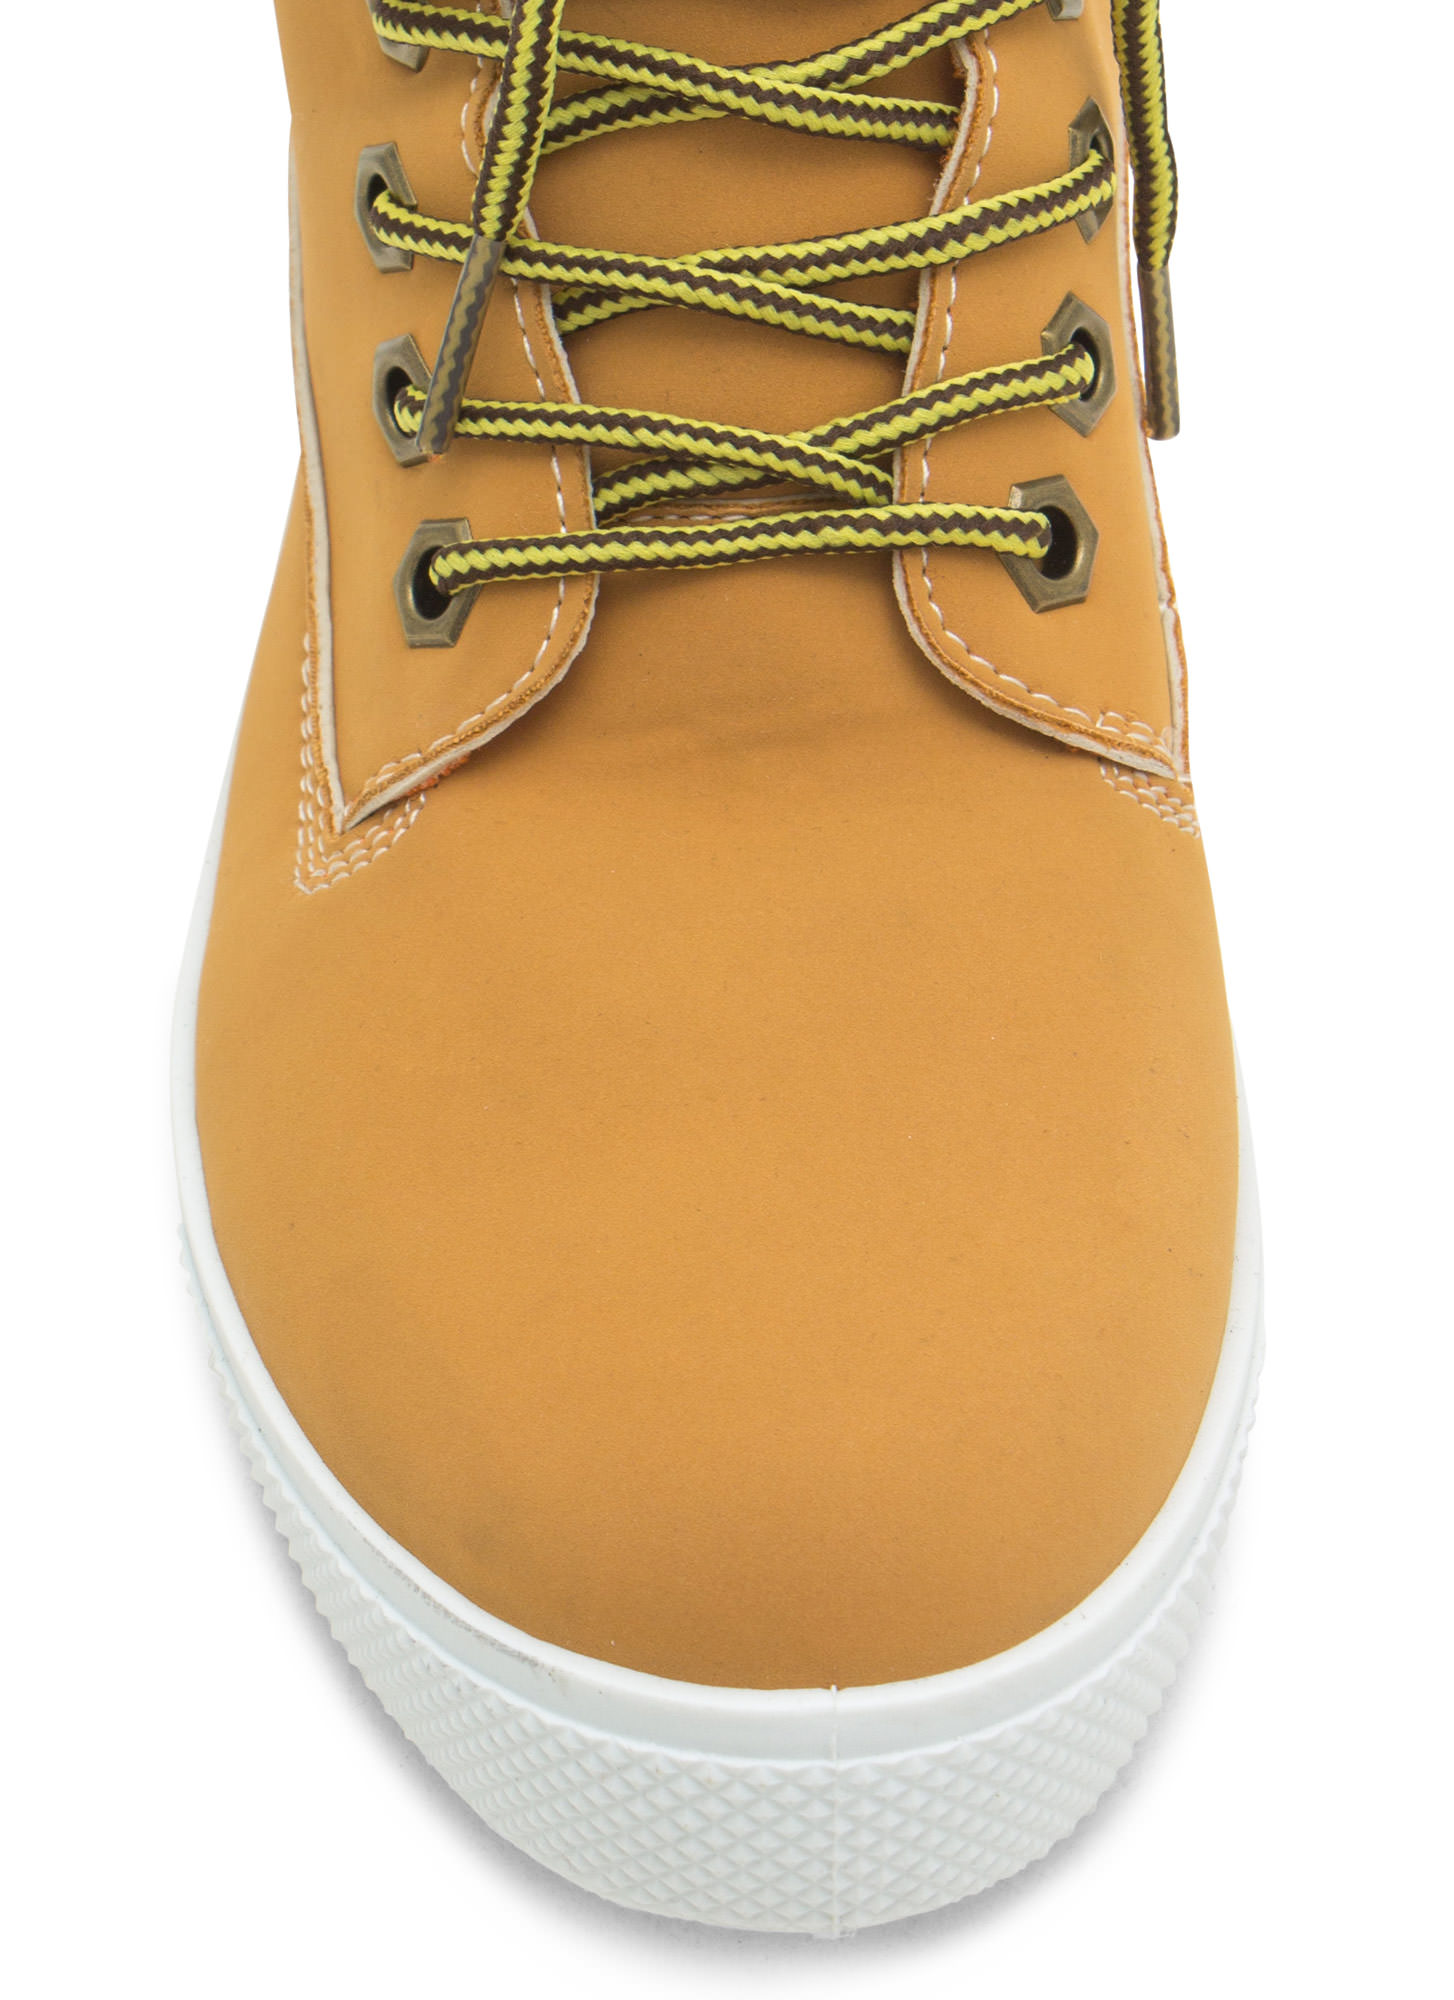 Daily Wear High Top Sneakers TAN